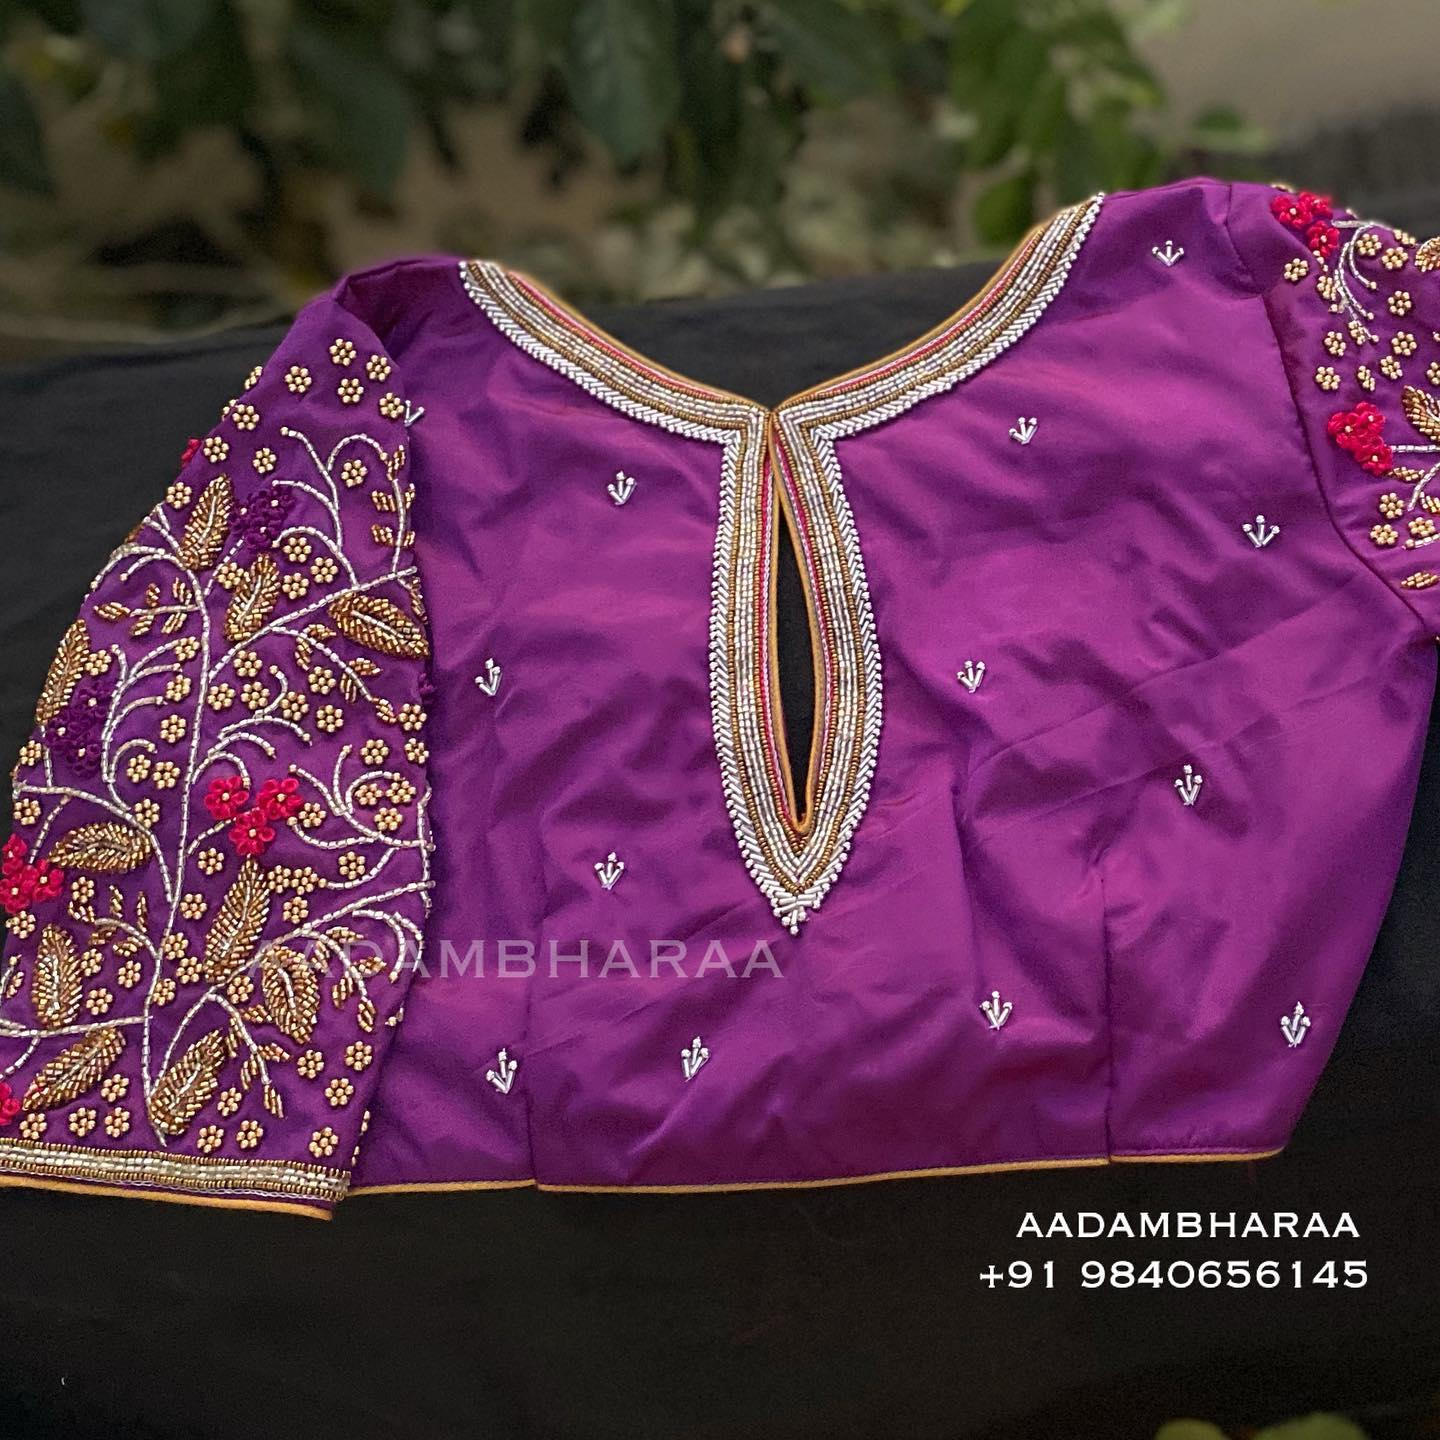 Celebrate the big moments of your life wearing Aadambharaa's unique purple blouse that is the right amount of Sparkle you need to dazzle on your special day.